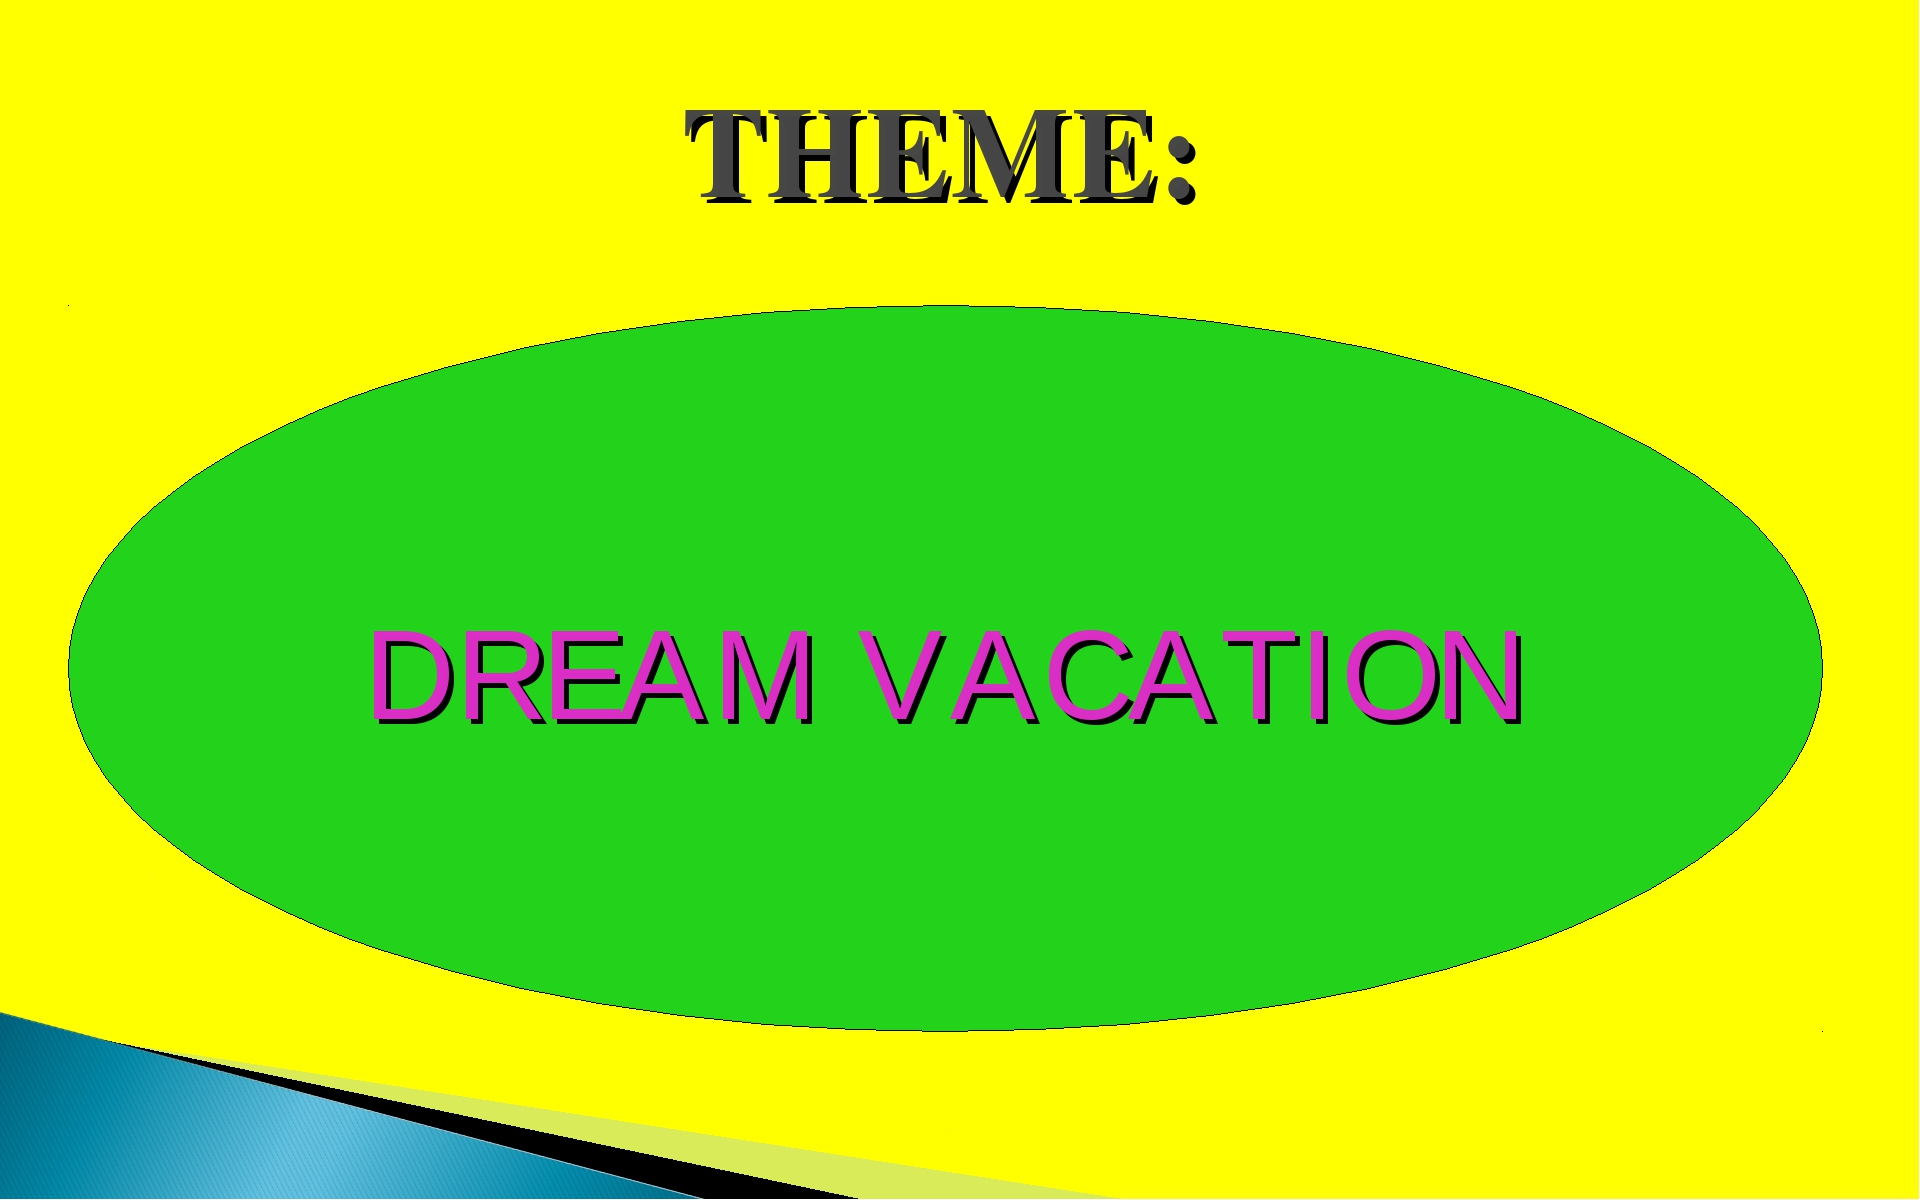 THEME: DREAM VACATION